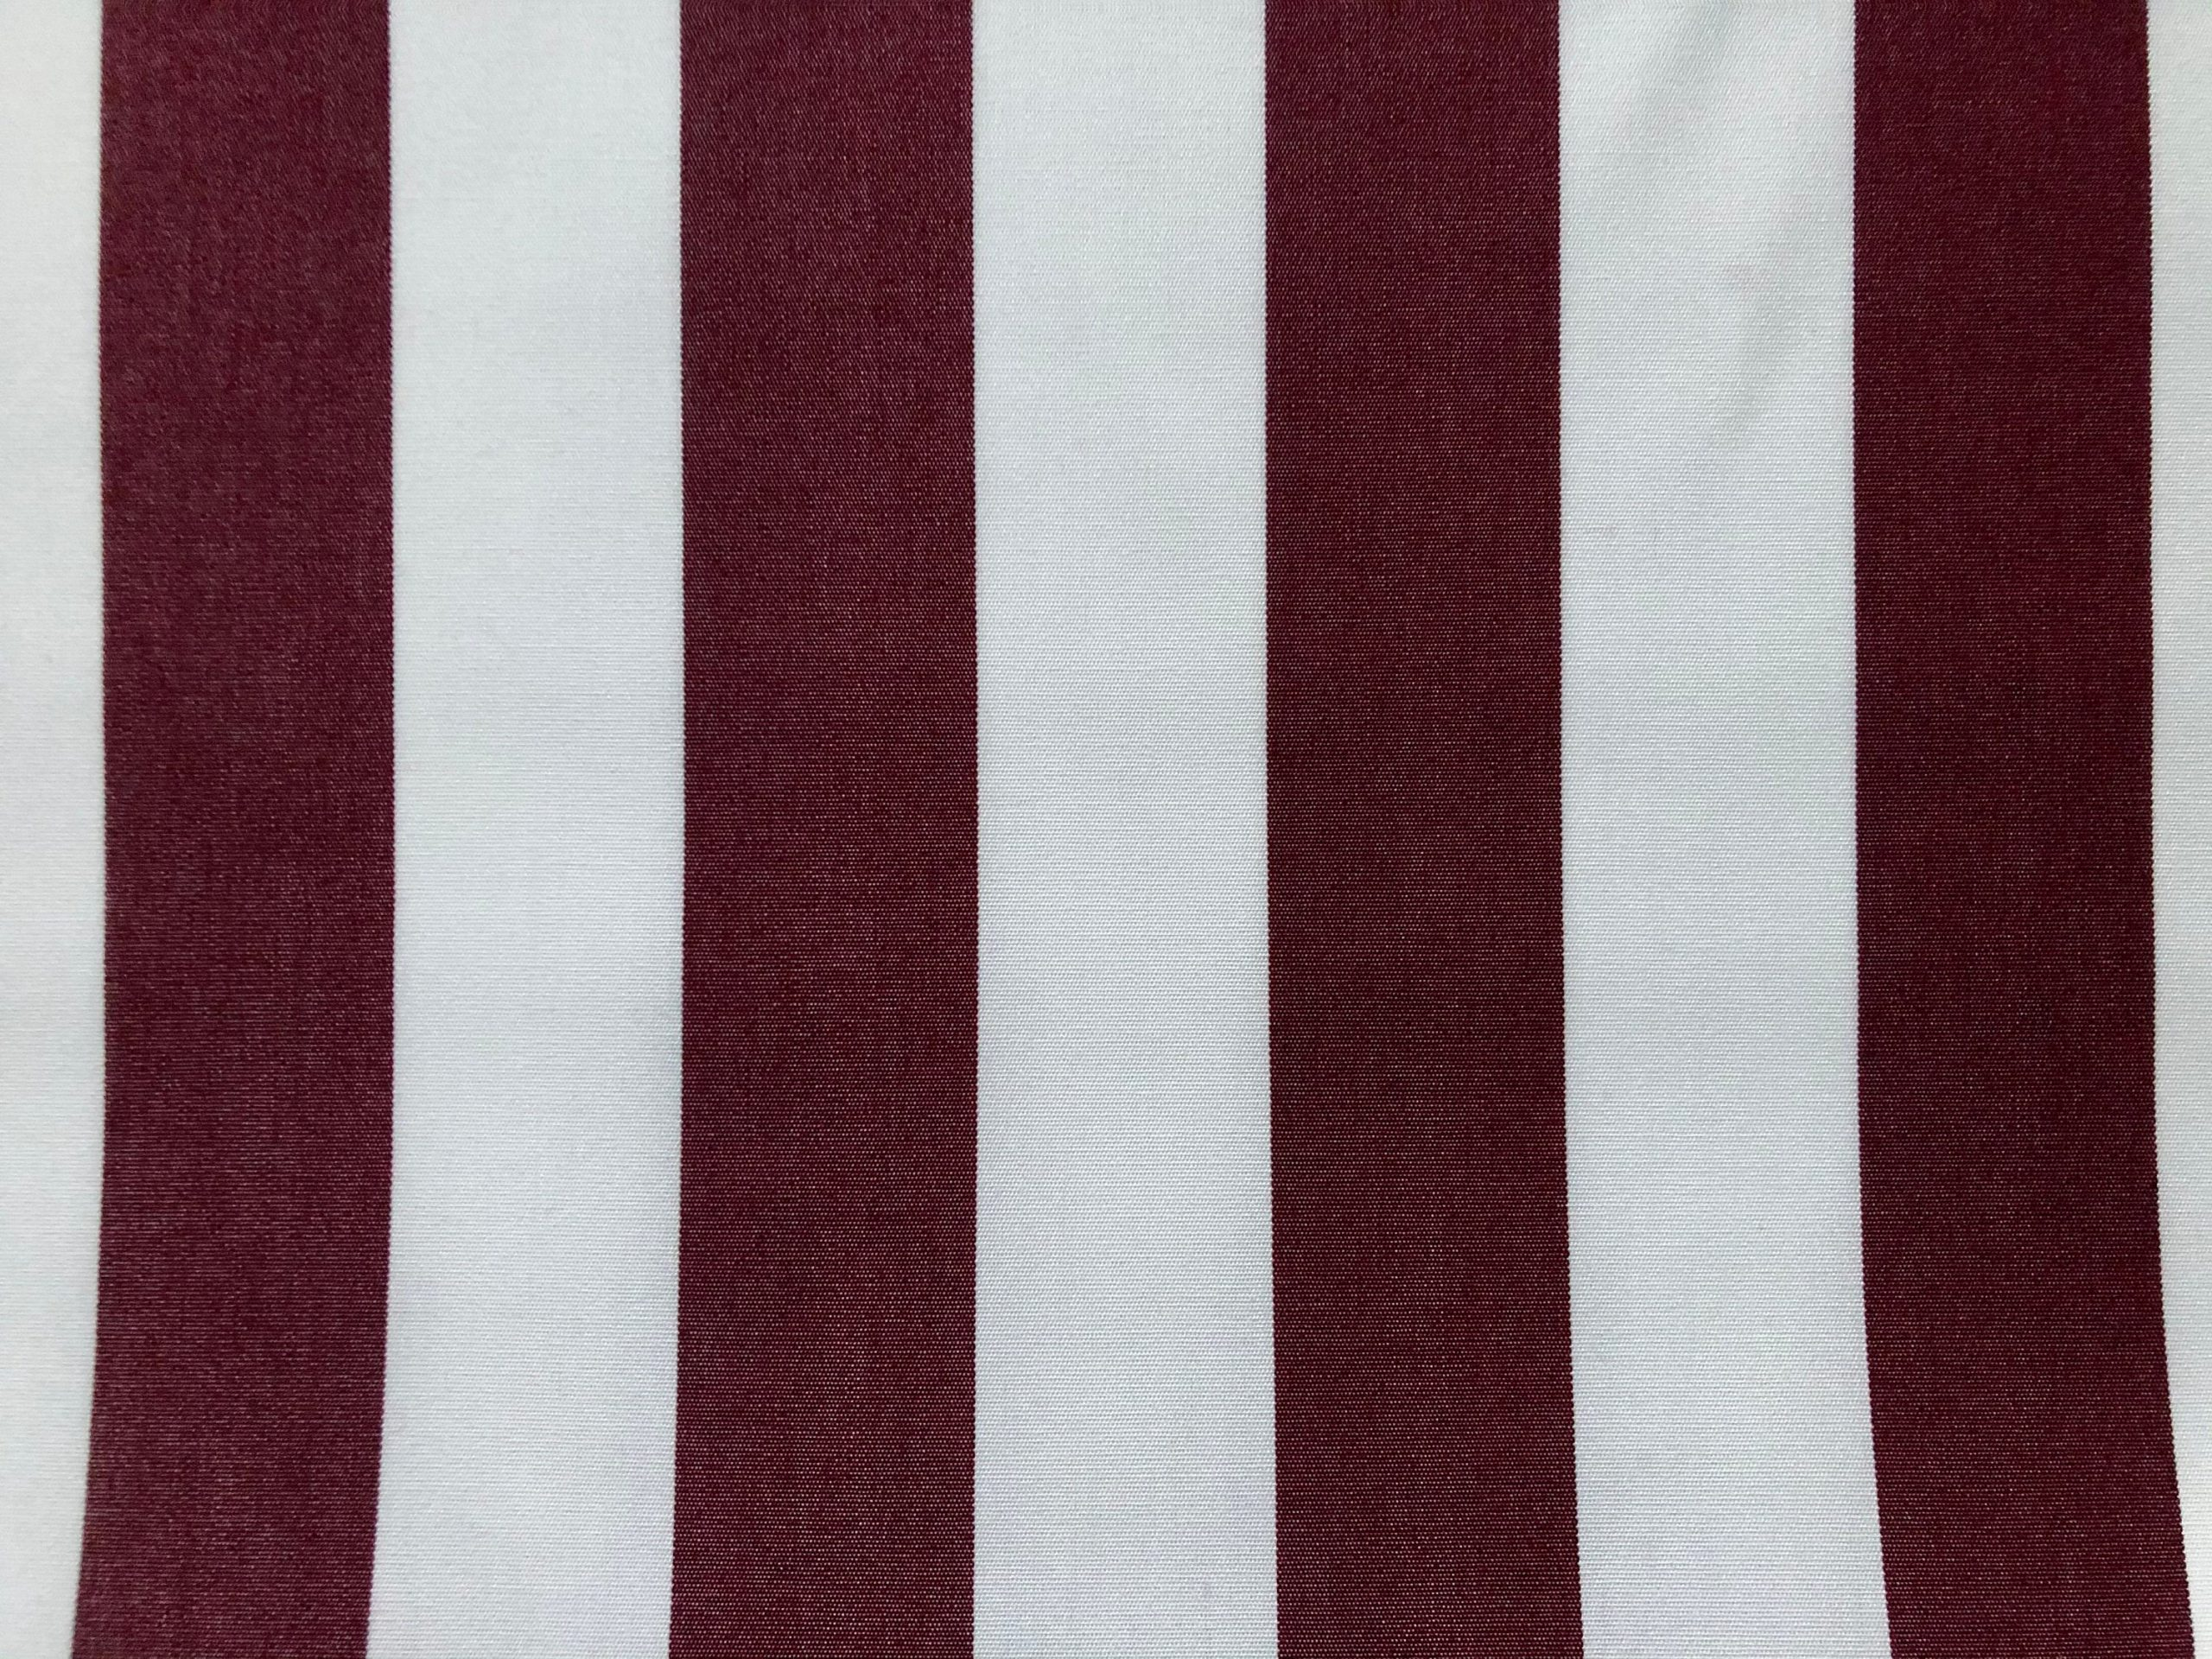 "Burgundy & White Striped DRALON Outdoor Fabric Acrylic Teflon Waterproof Upholstery Material For Cushion Gazebo Beach – 125""/320cm Wide"